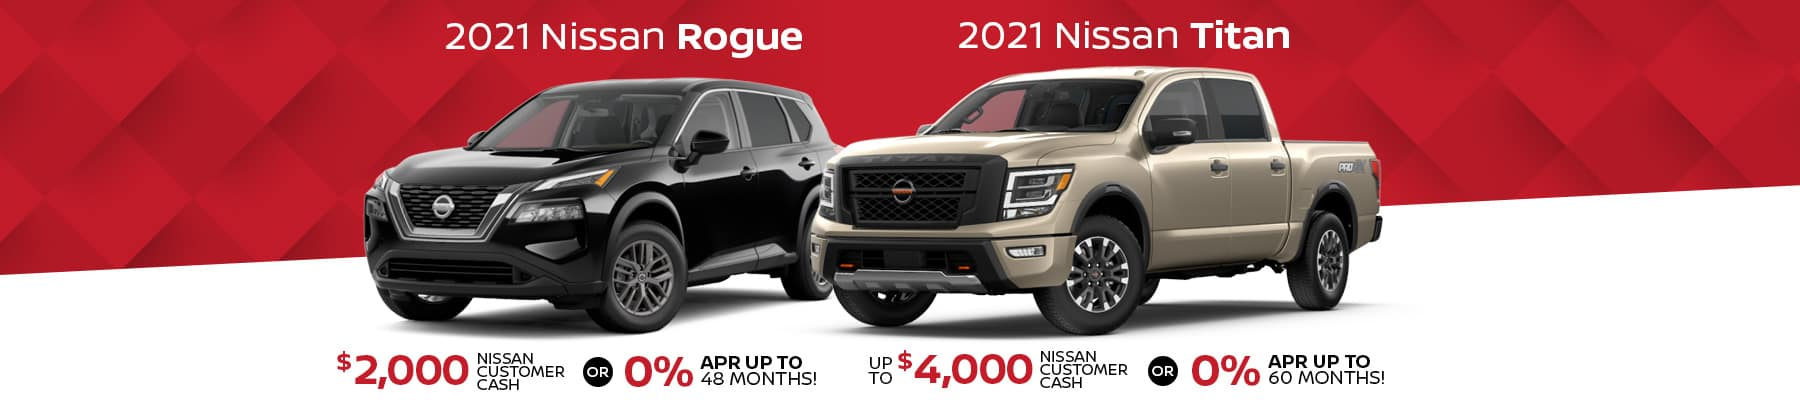 2021 Nissan Rogue and Titan Offers